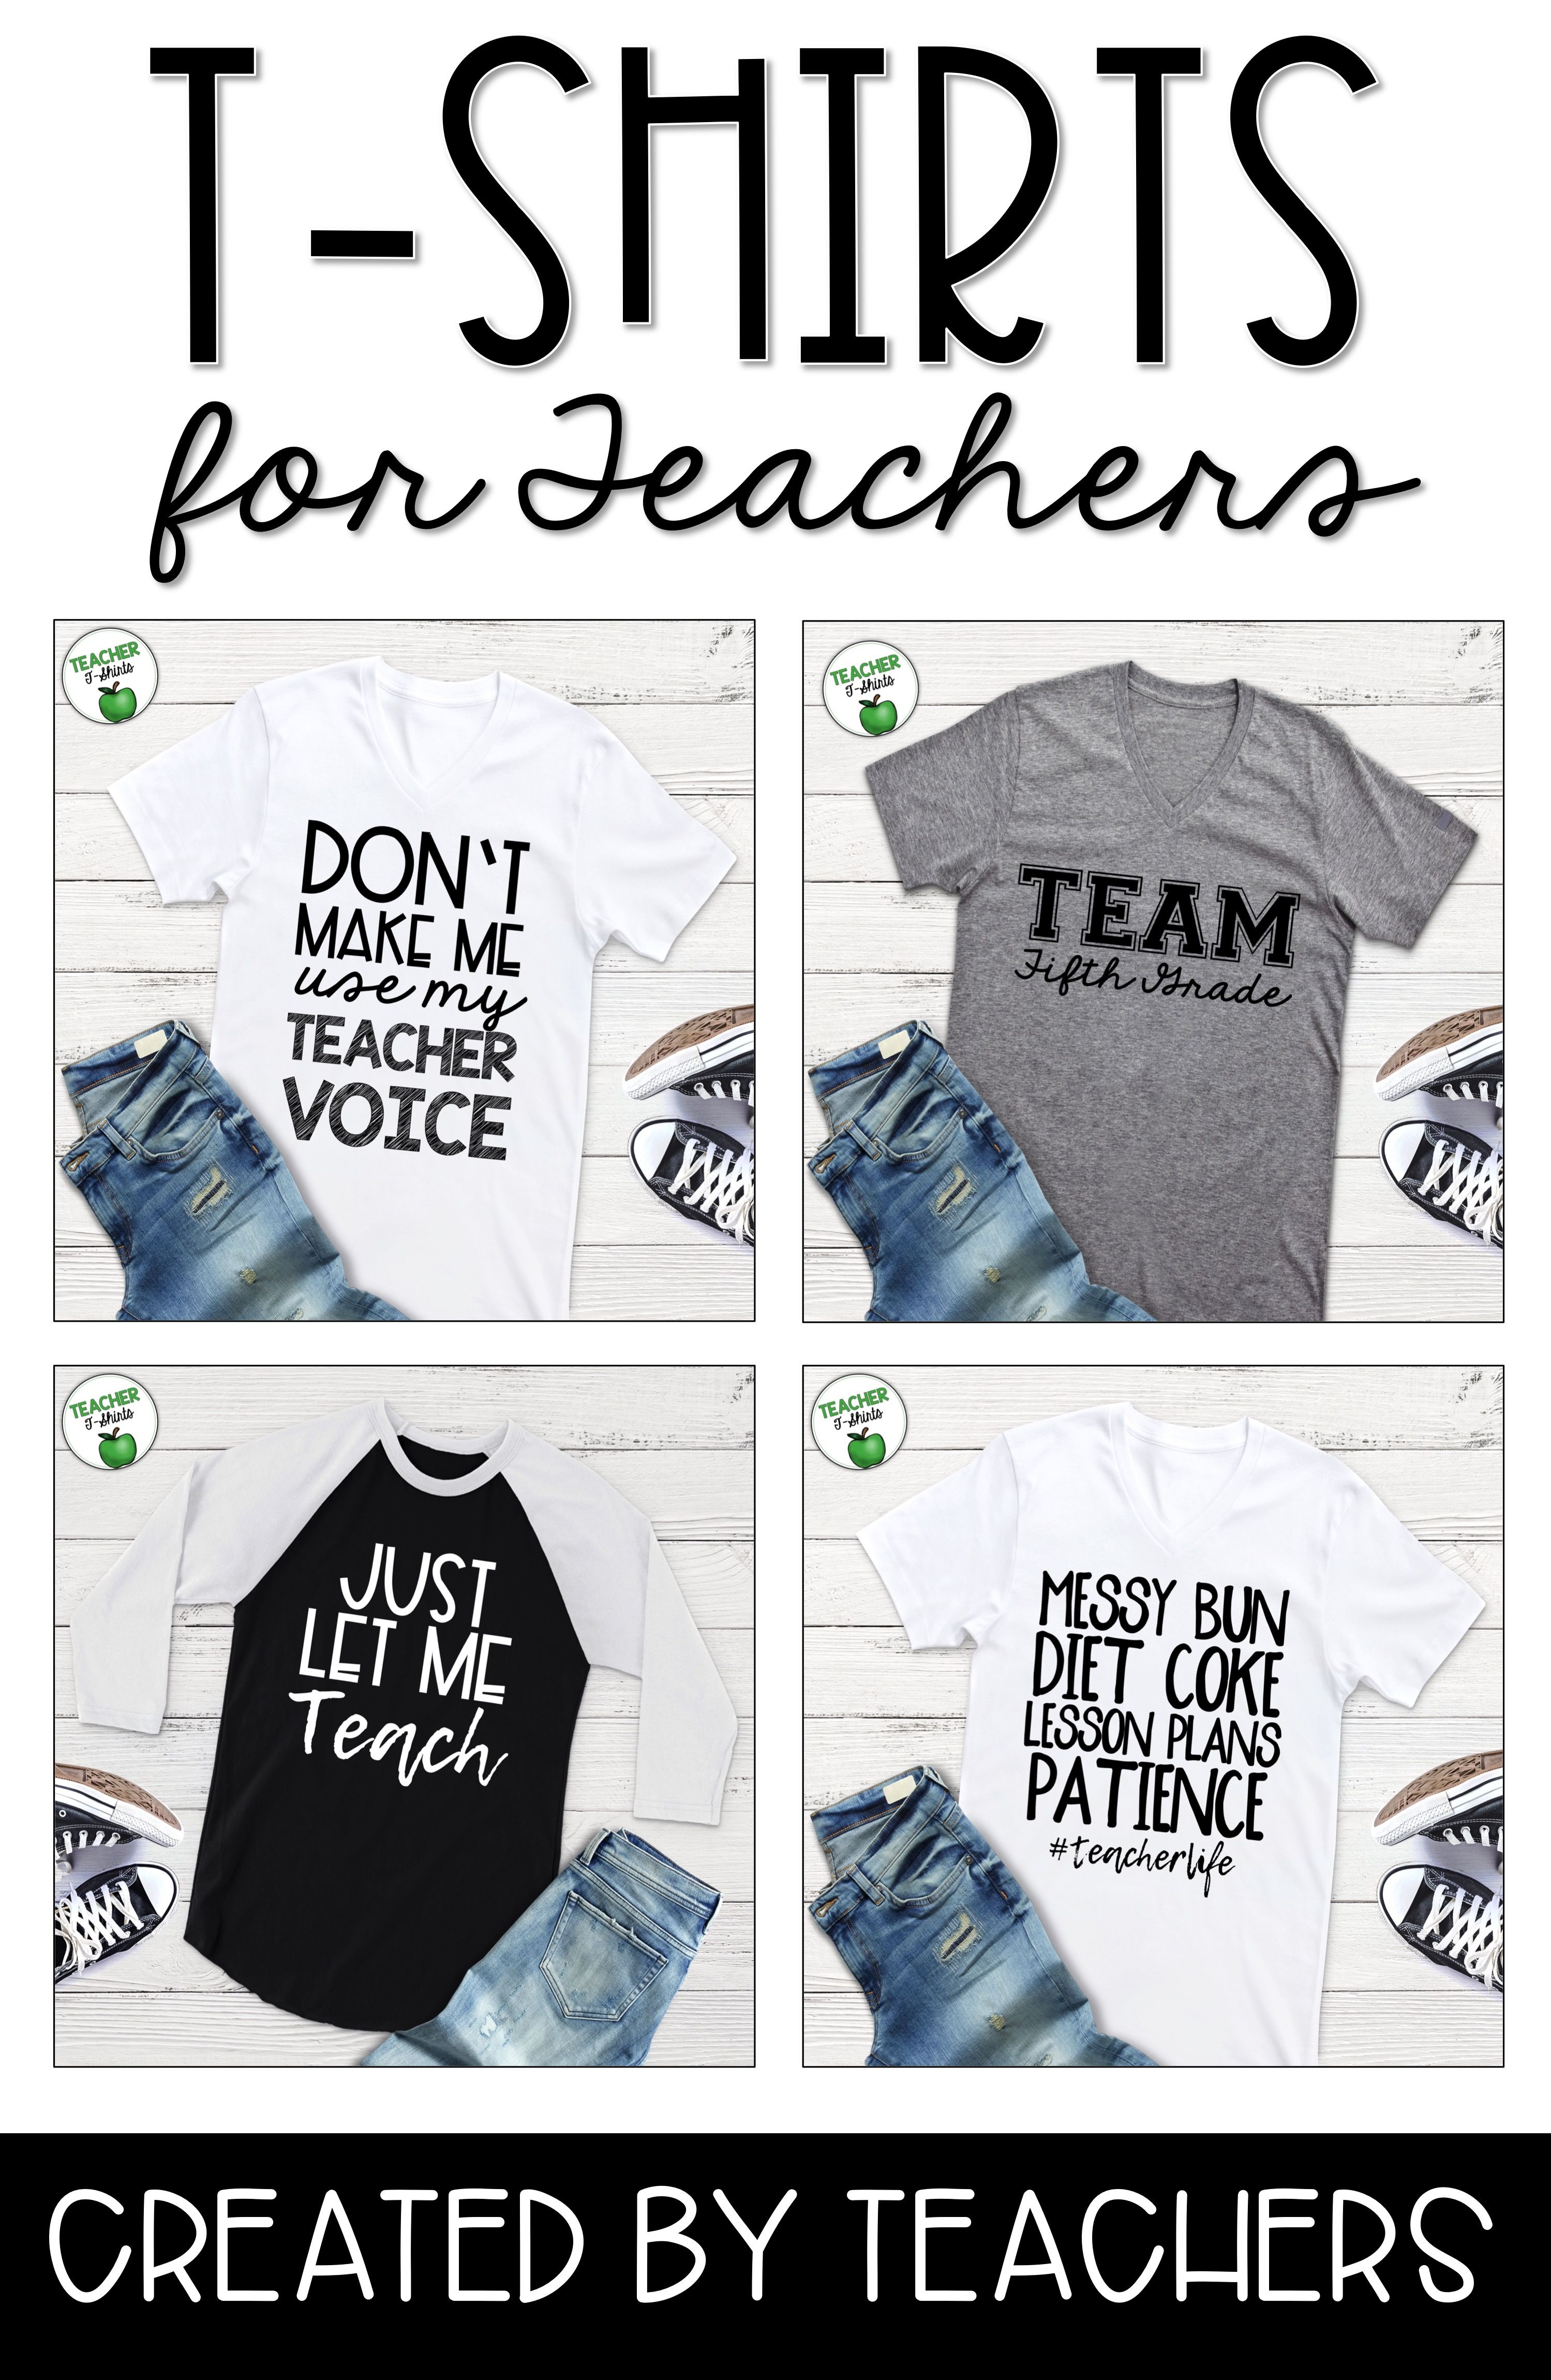 Teacher t shirts with funny ideas and teacher truths are perfect for